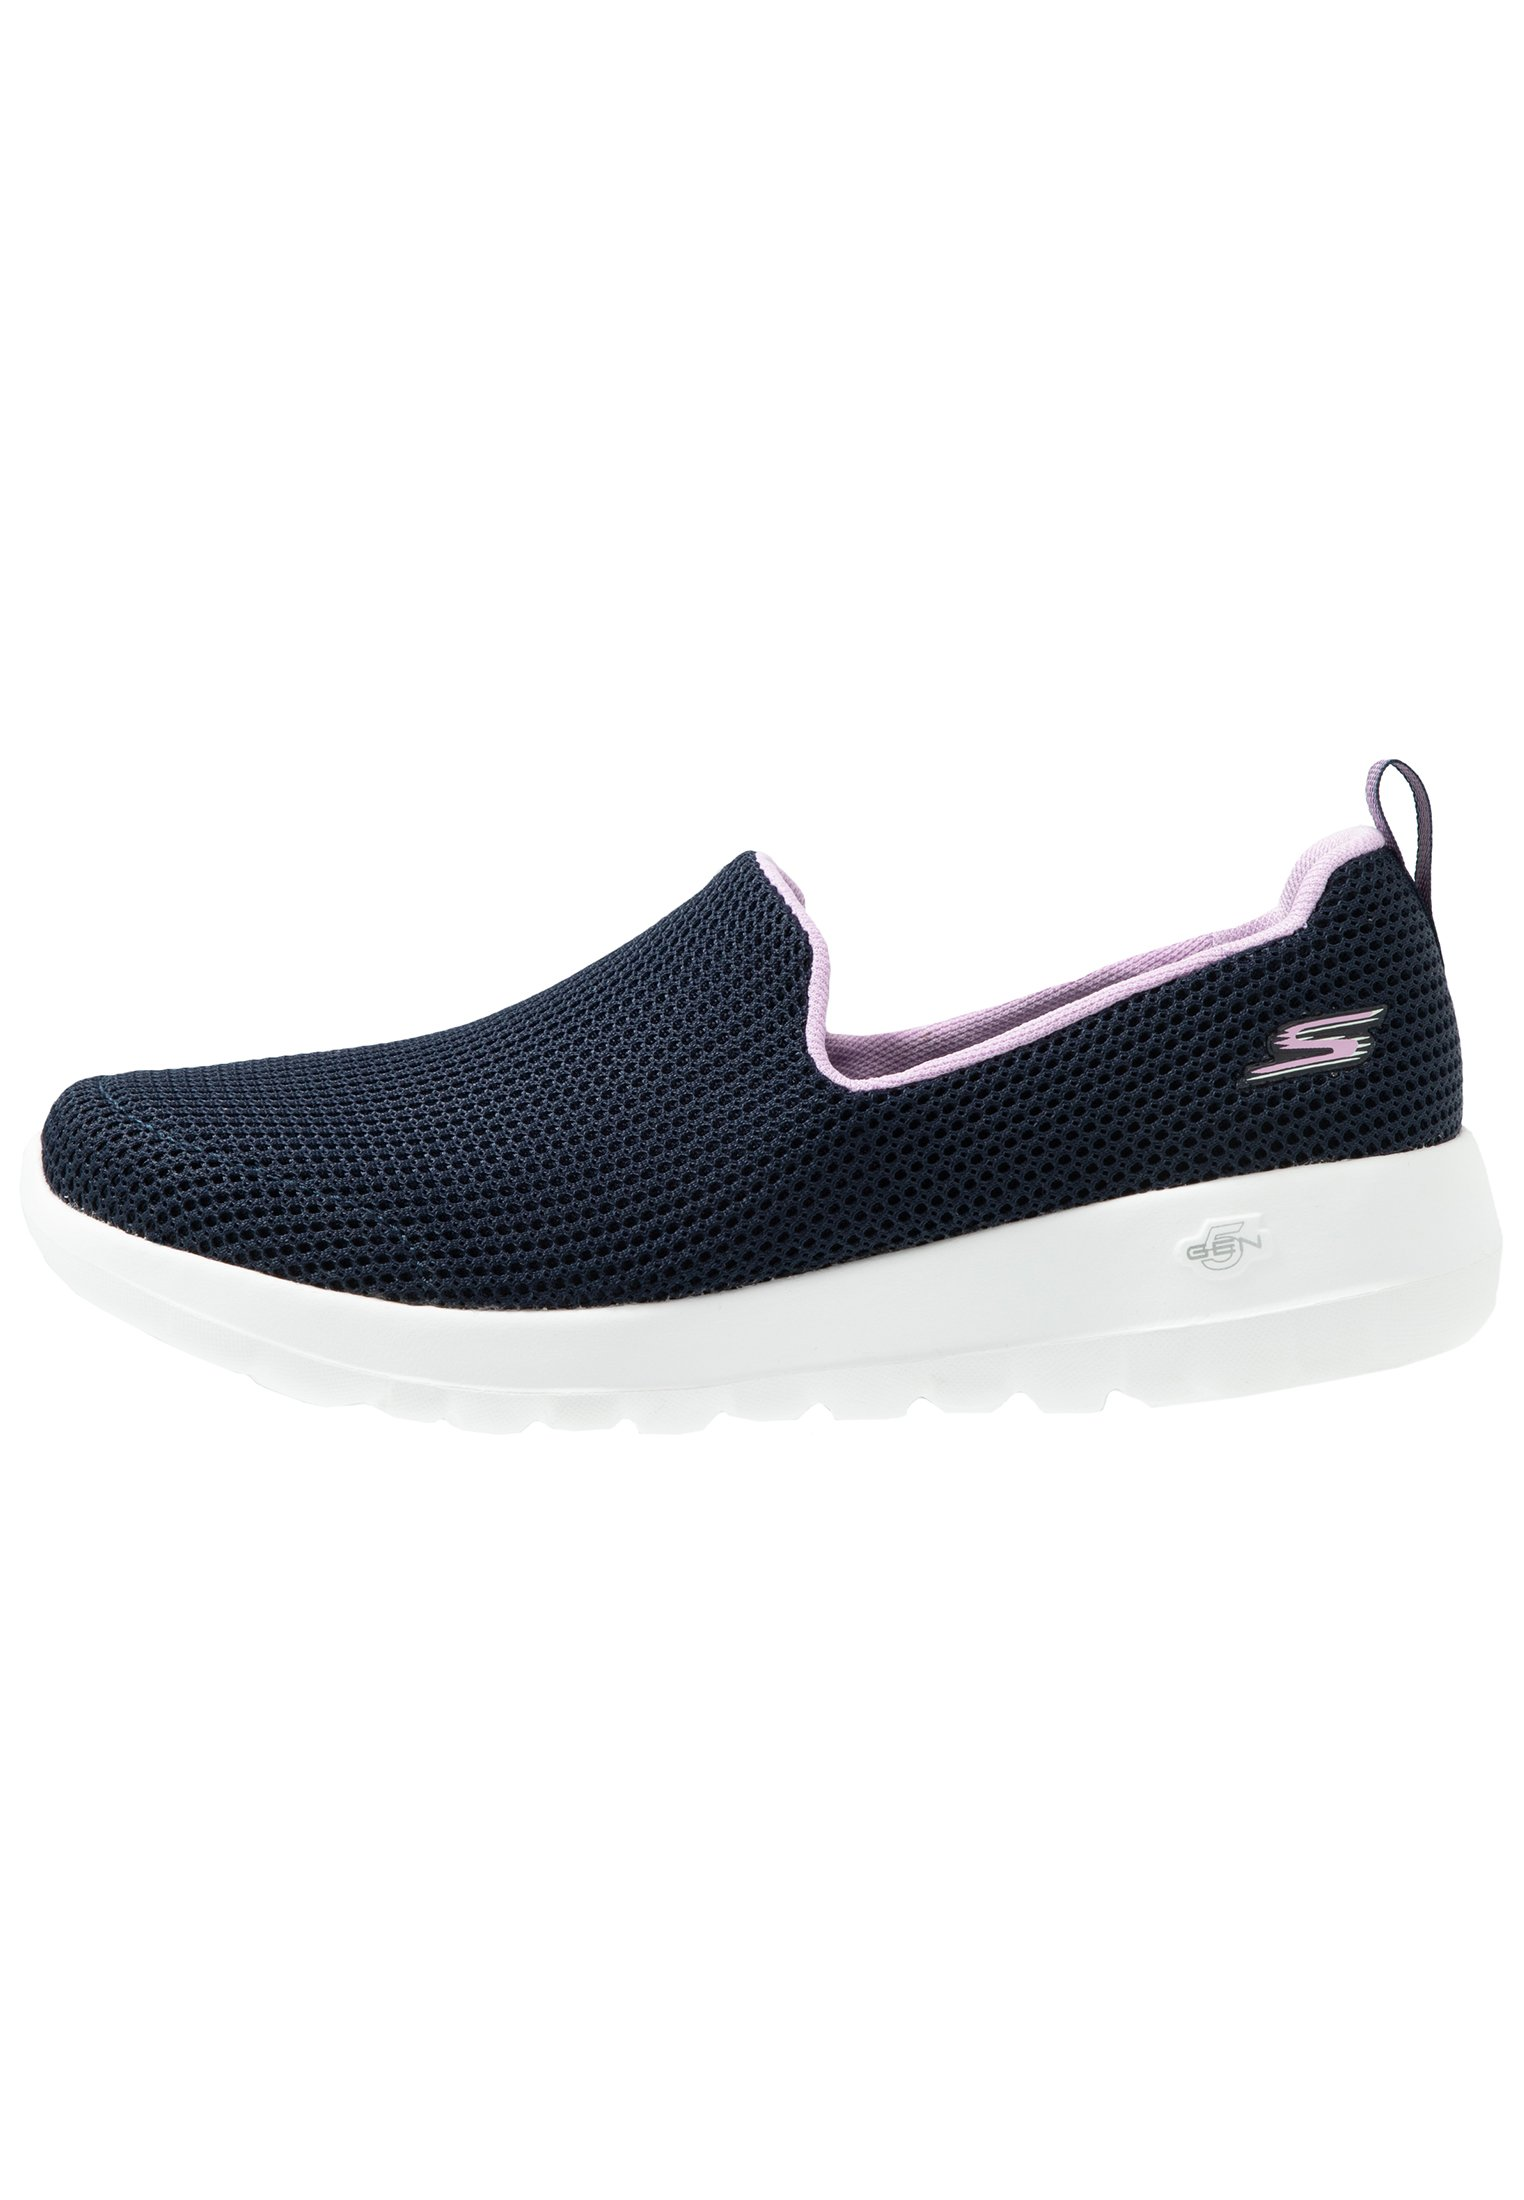 Skechers Performance GO WALK JOY - Walkingschuh - navy/lavender - Black Friday